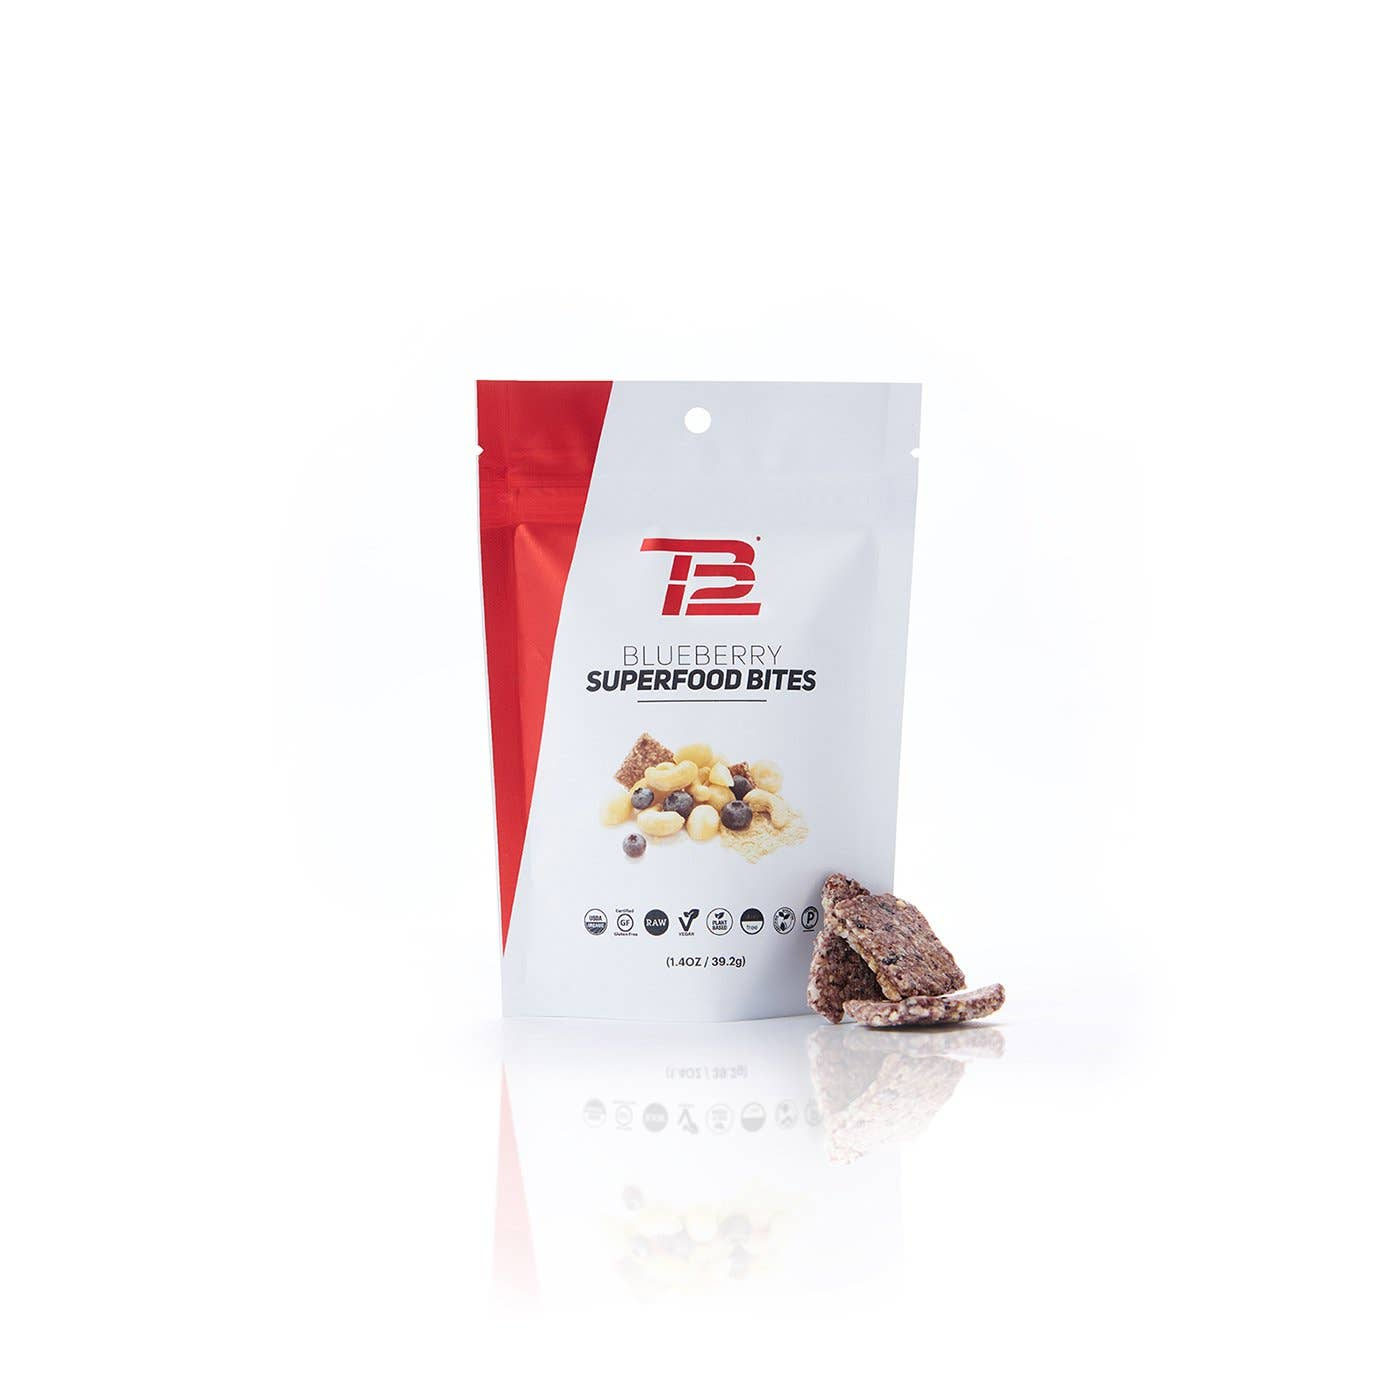 TB12™ Blueberry Superfood Bites front